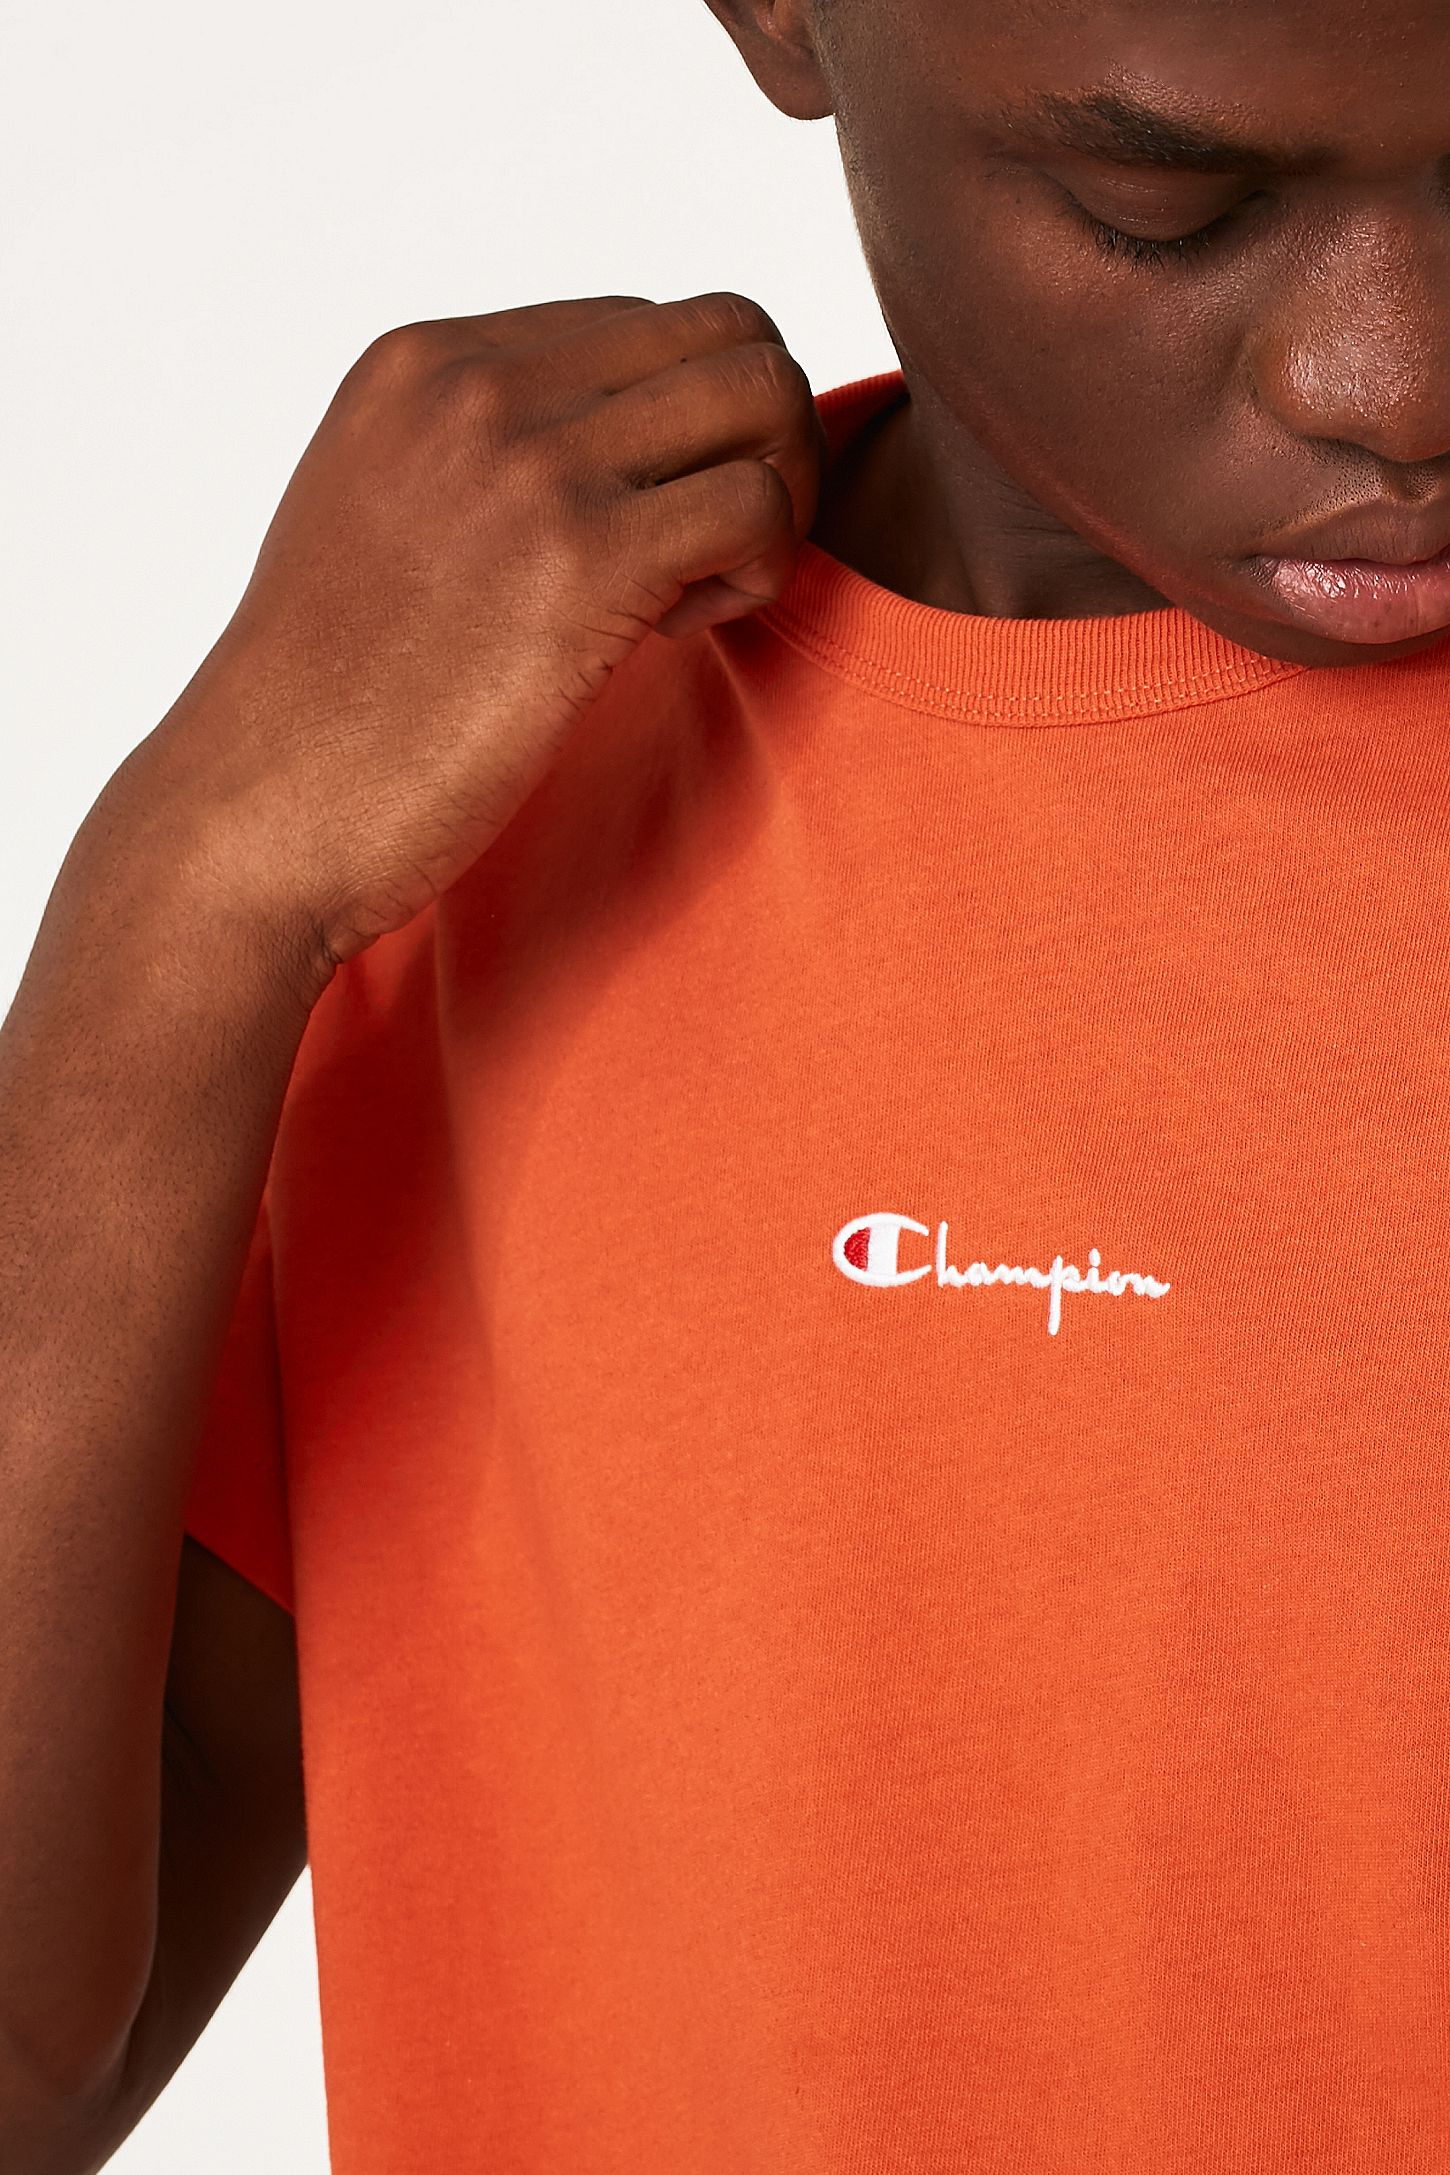 59addab01 Champion X UO Small Script Logo Burnt Orange Reverse Weave T-Shirt. Click  on image to zoom. Hover to zoom. Double Tap to Zoom